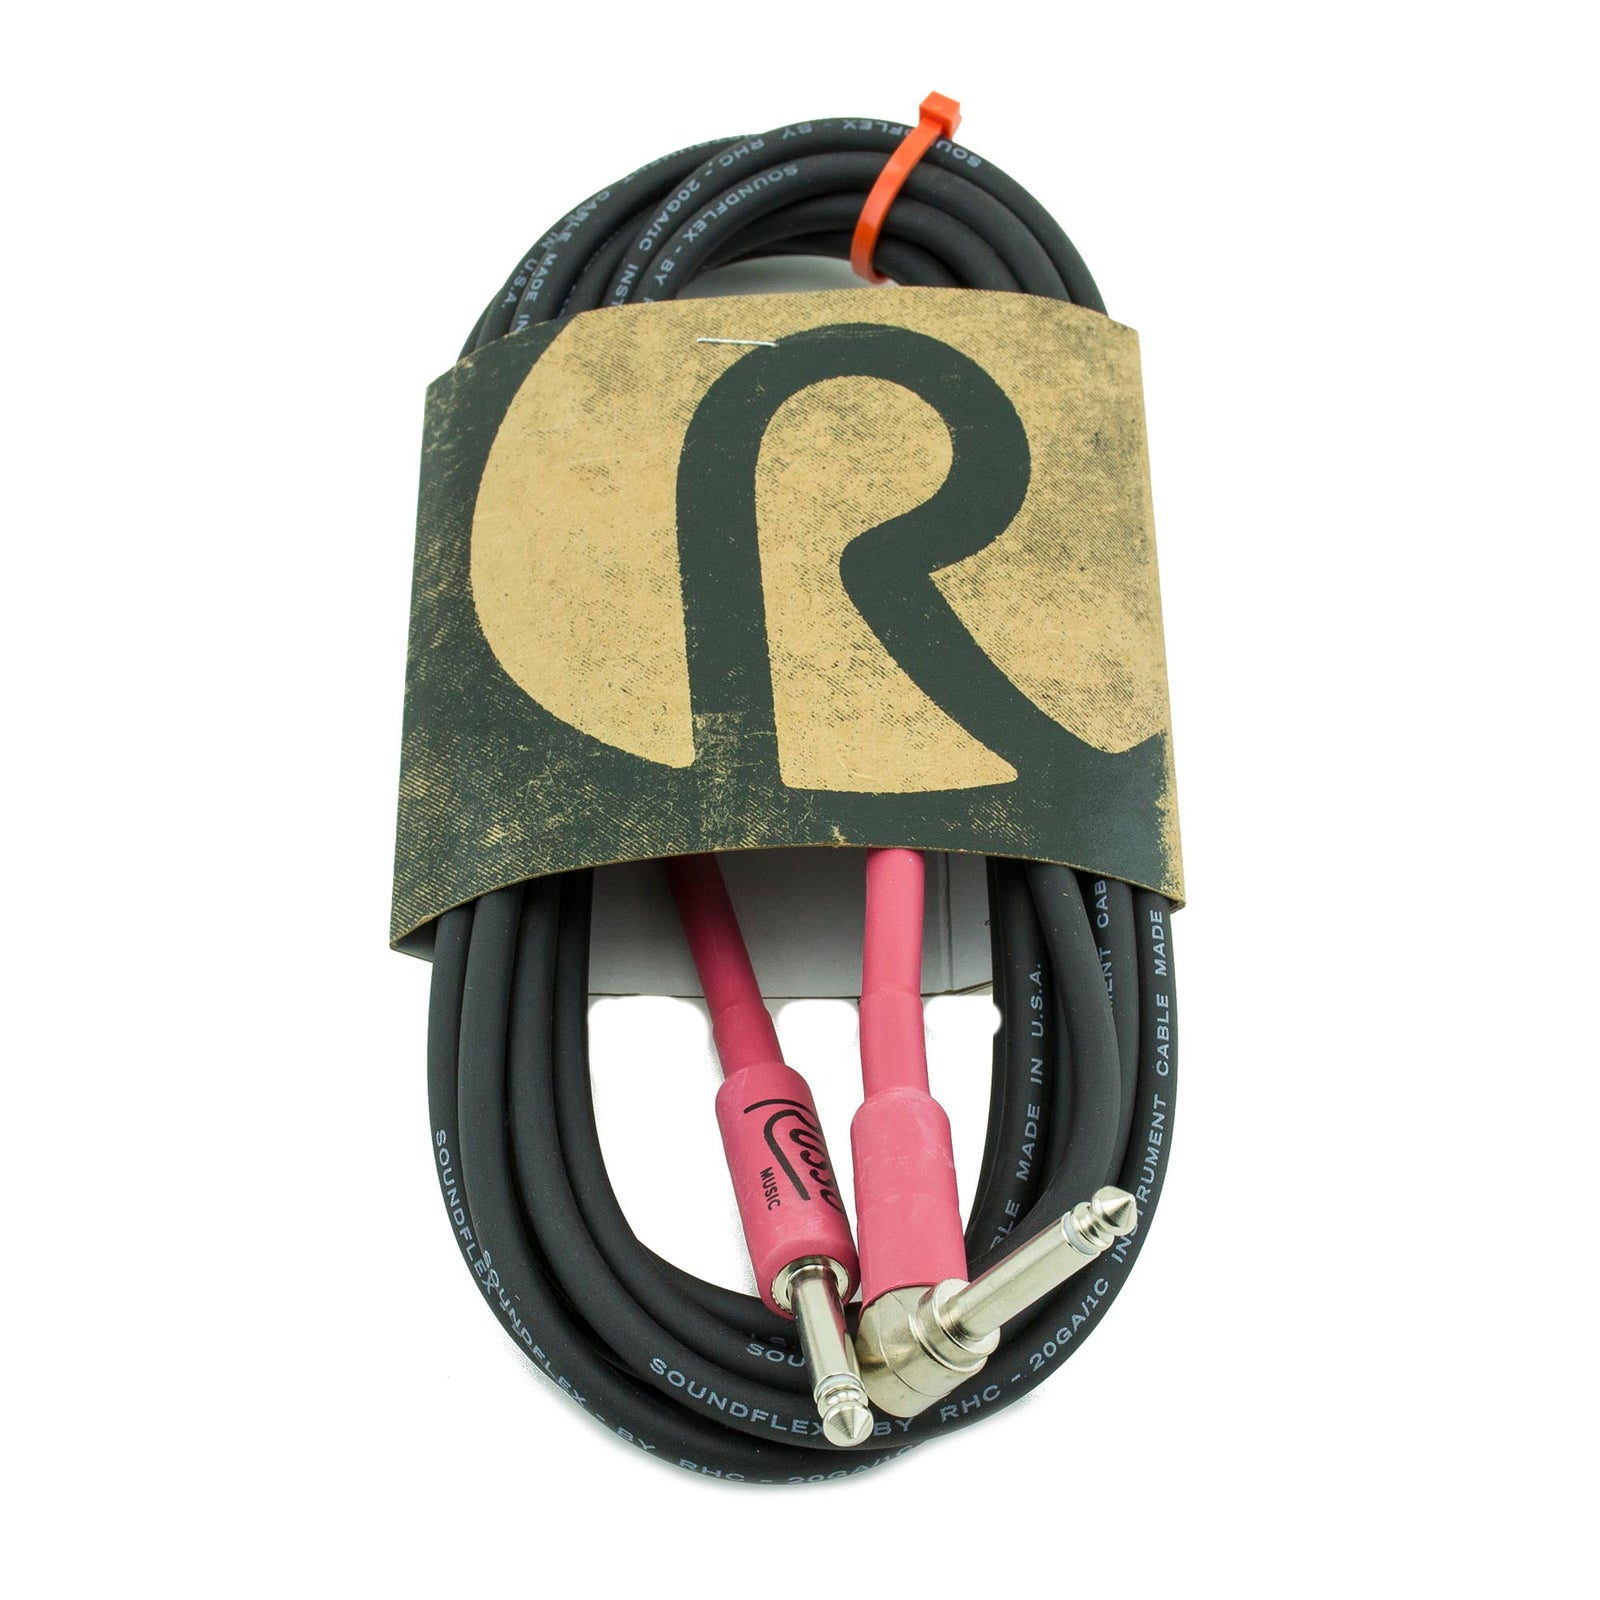 "Russo Music 1/4 To 1/4"" Unbalanced Cable - 15' R"